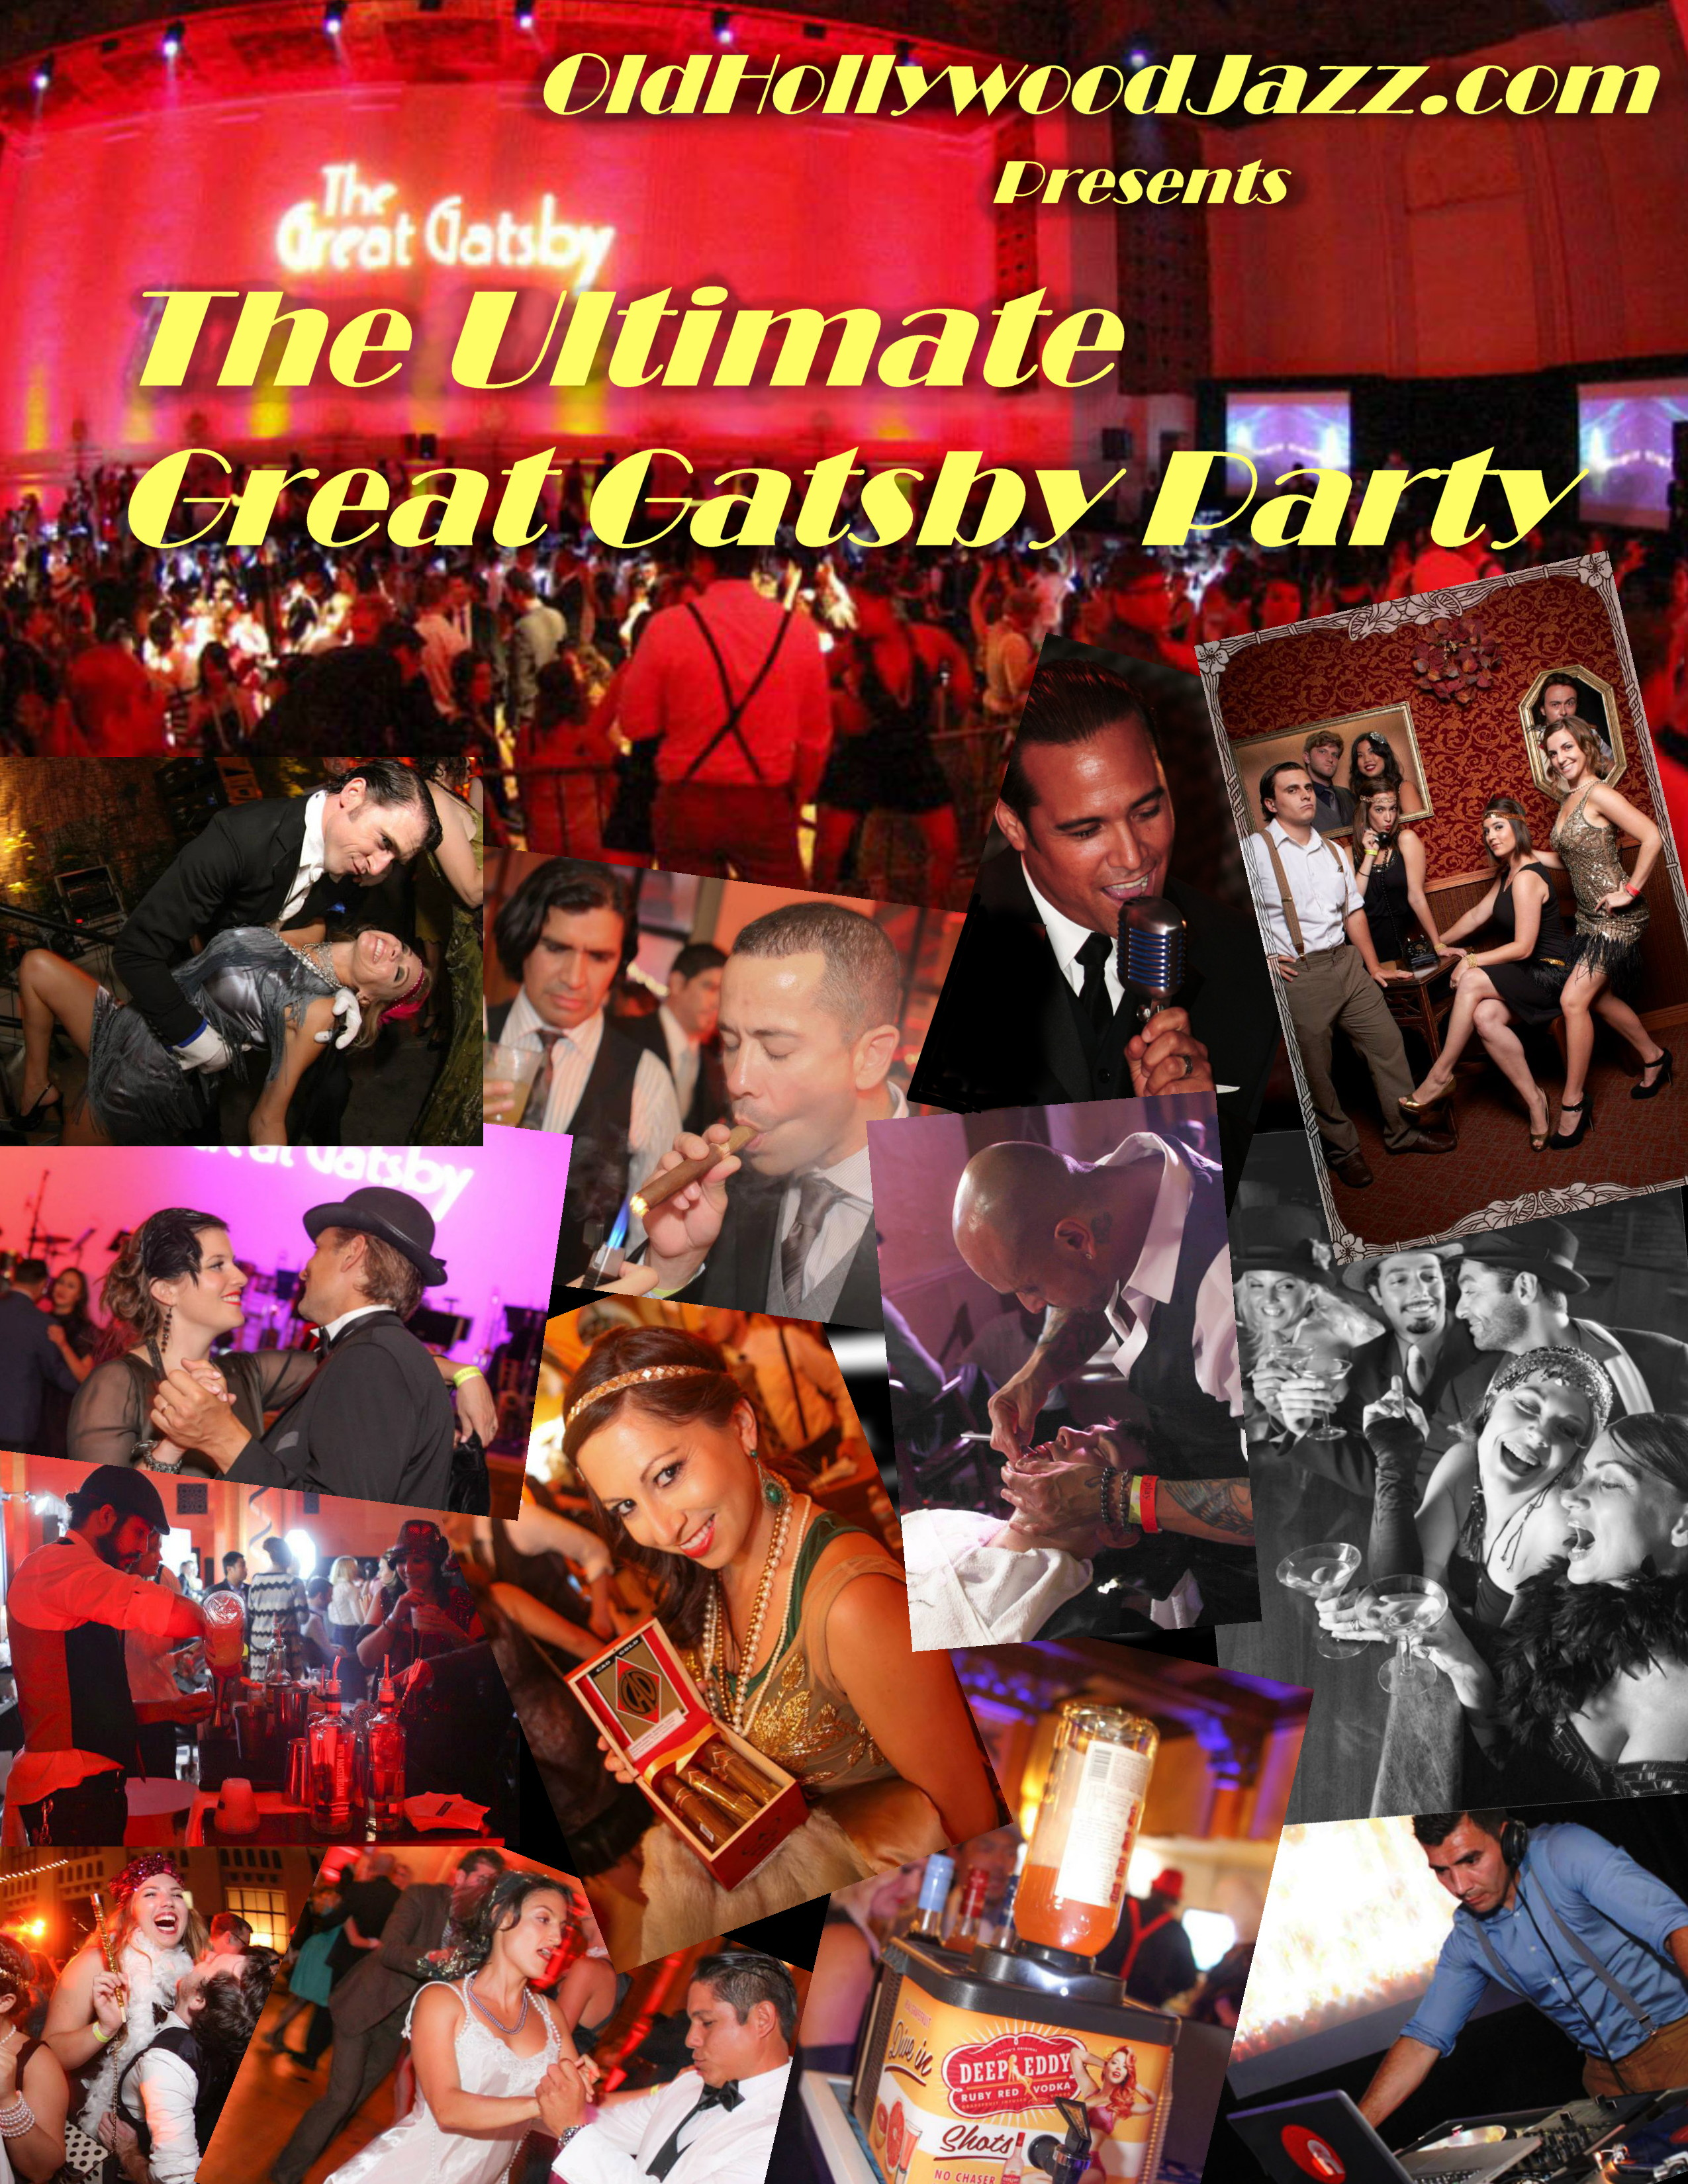 Great gatsby band jazz roaring 20s lso angeles 1930s 1920s  1940s.jpg